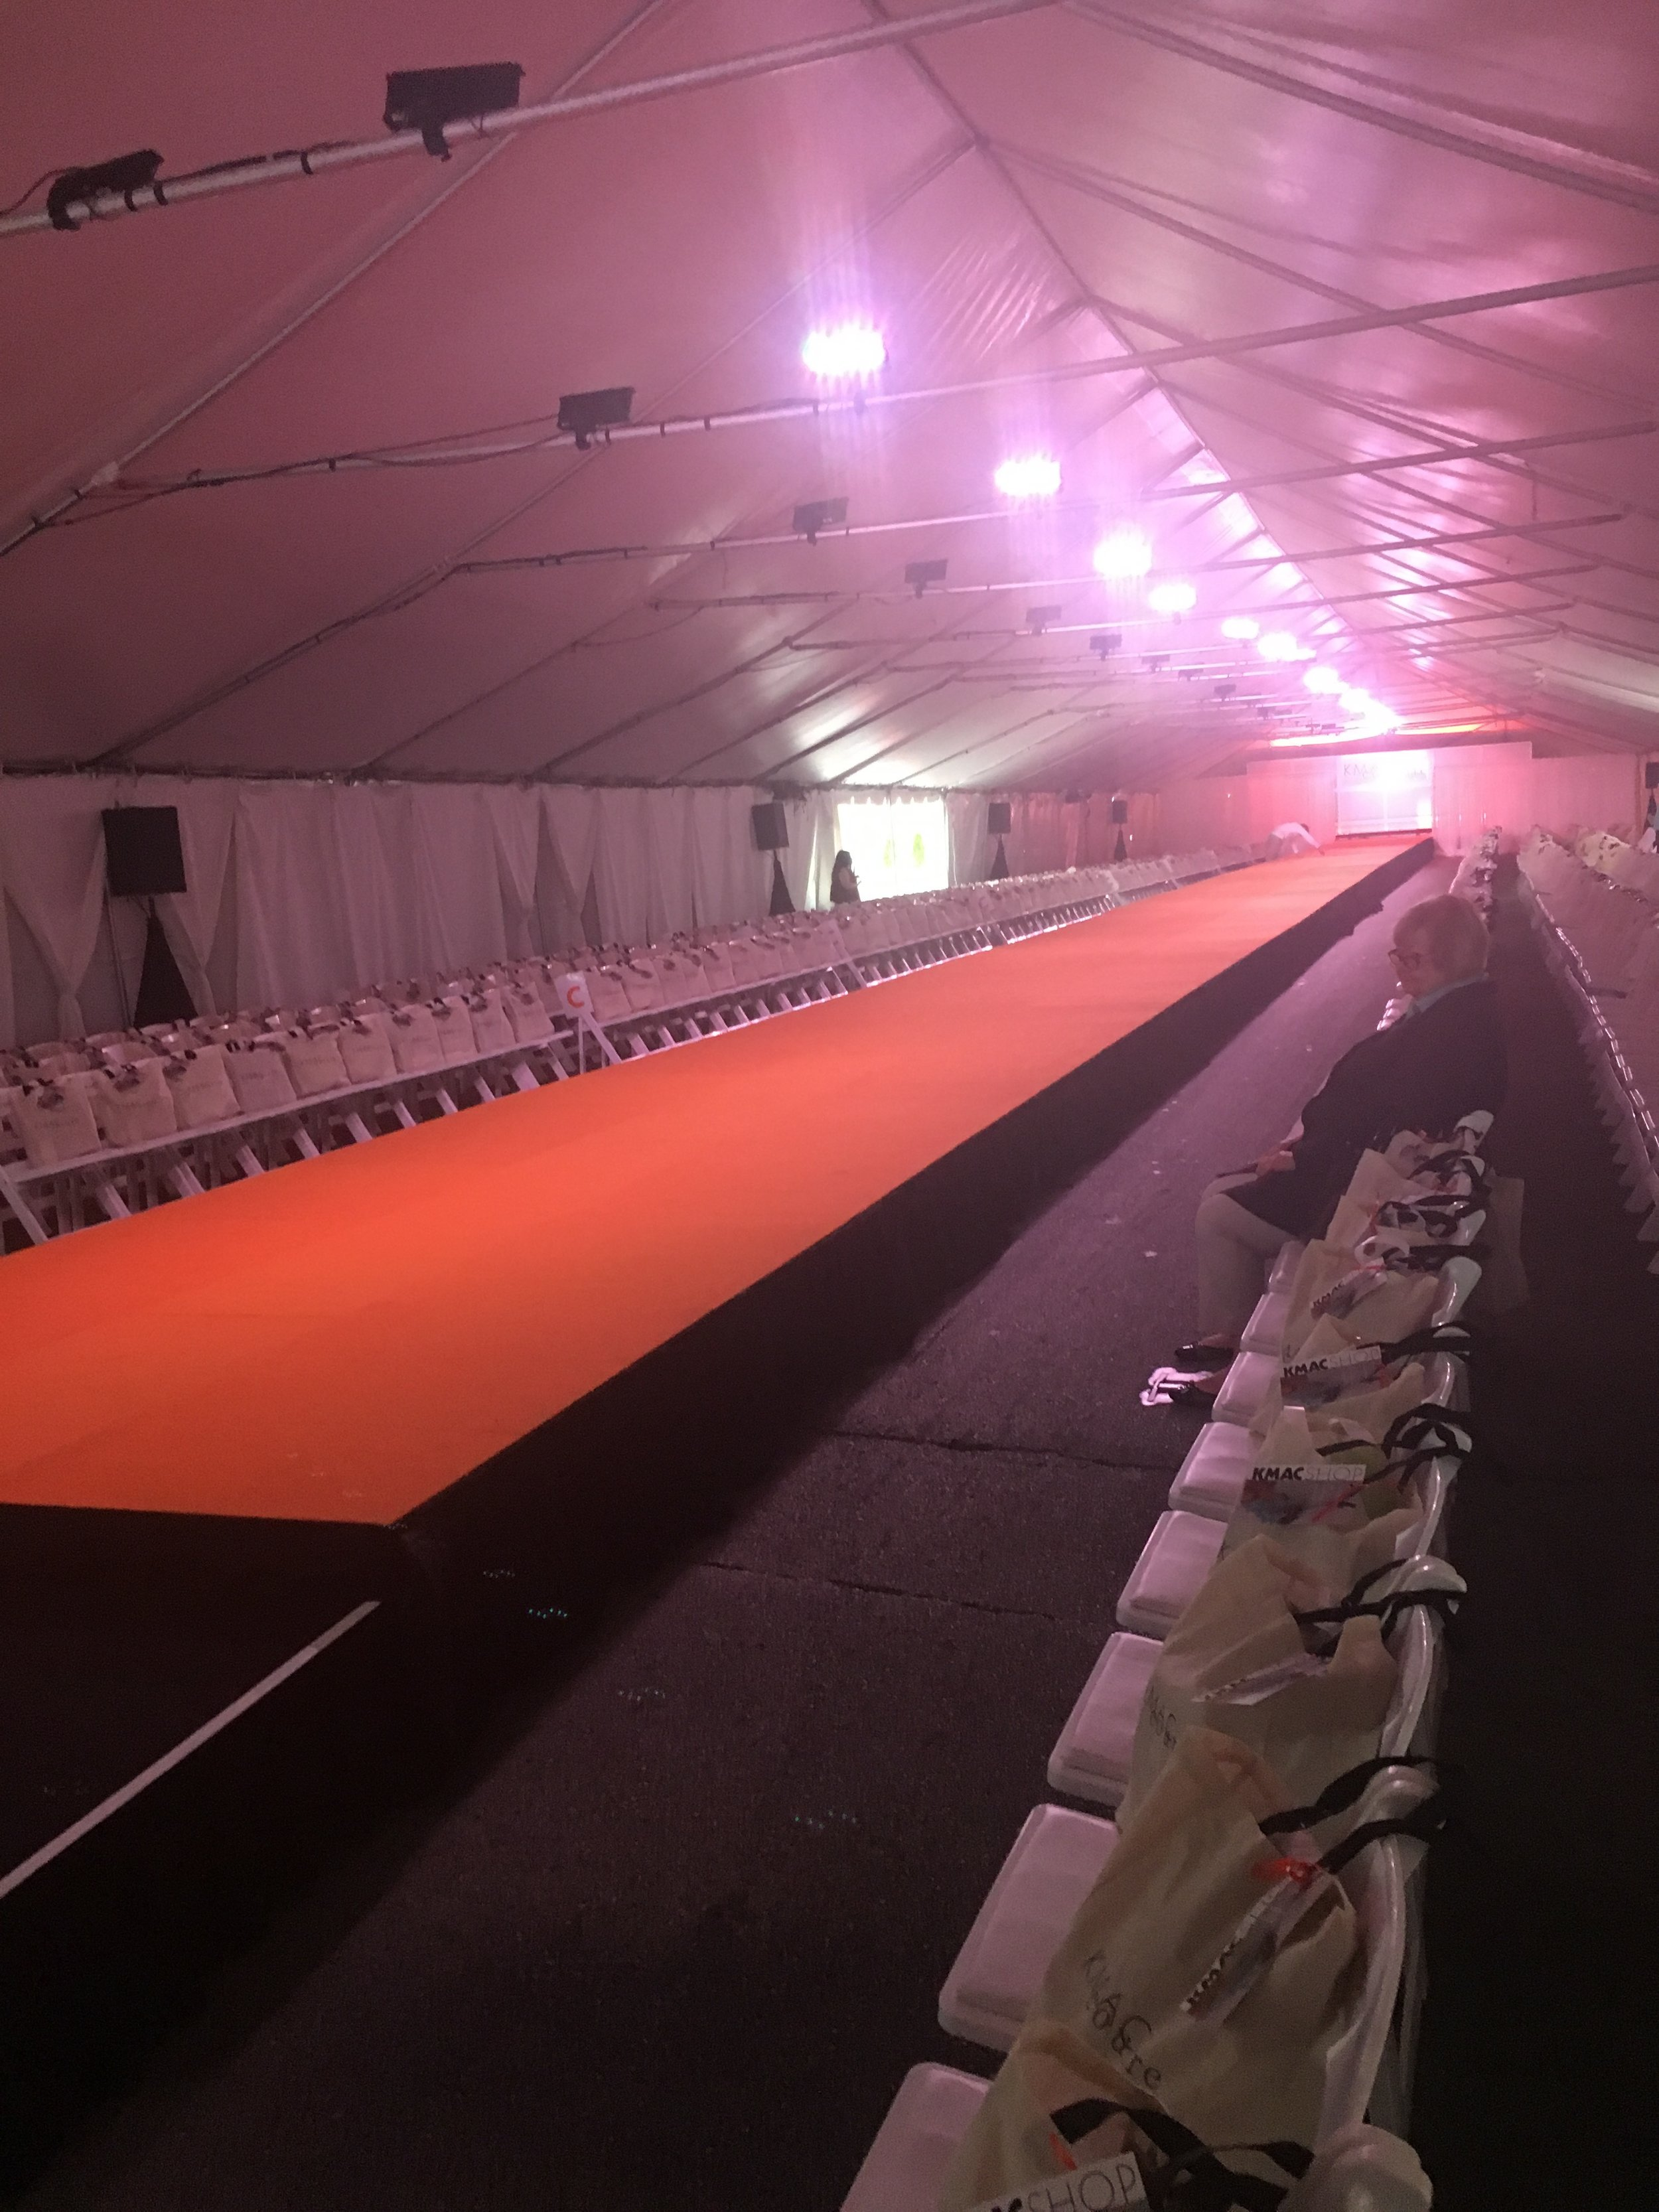 the runway before the public arrival